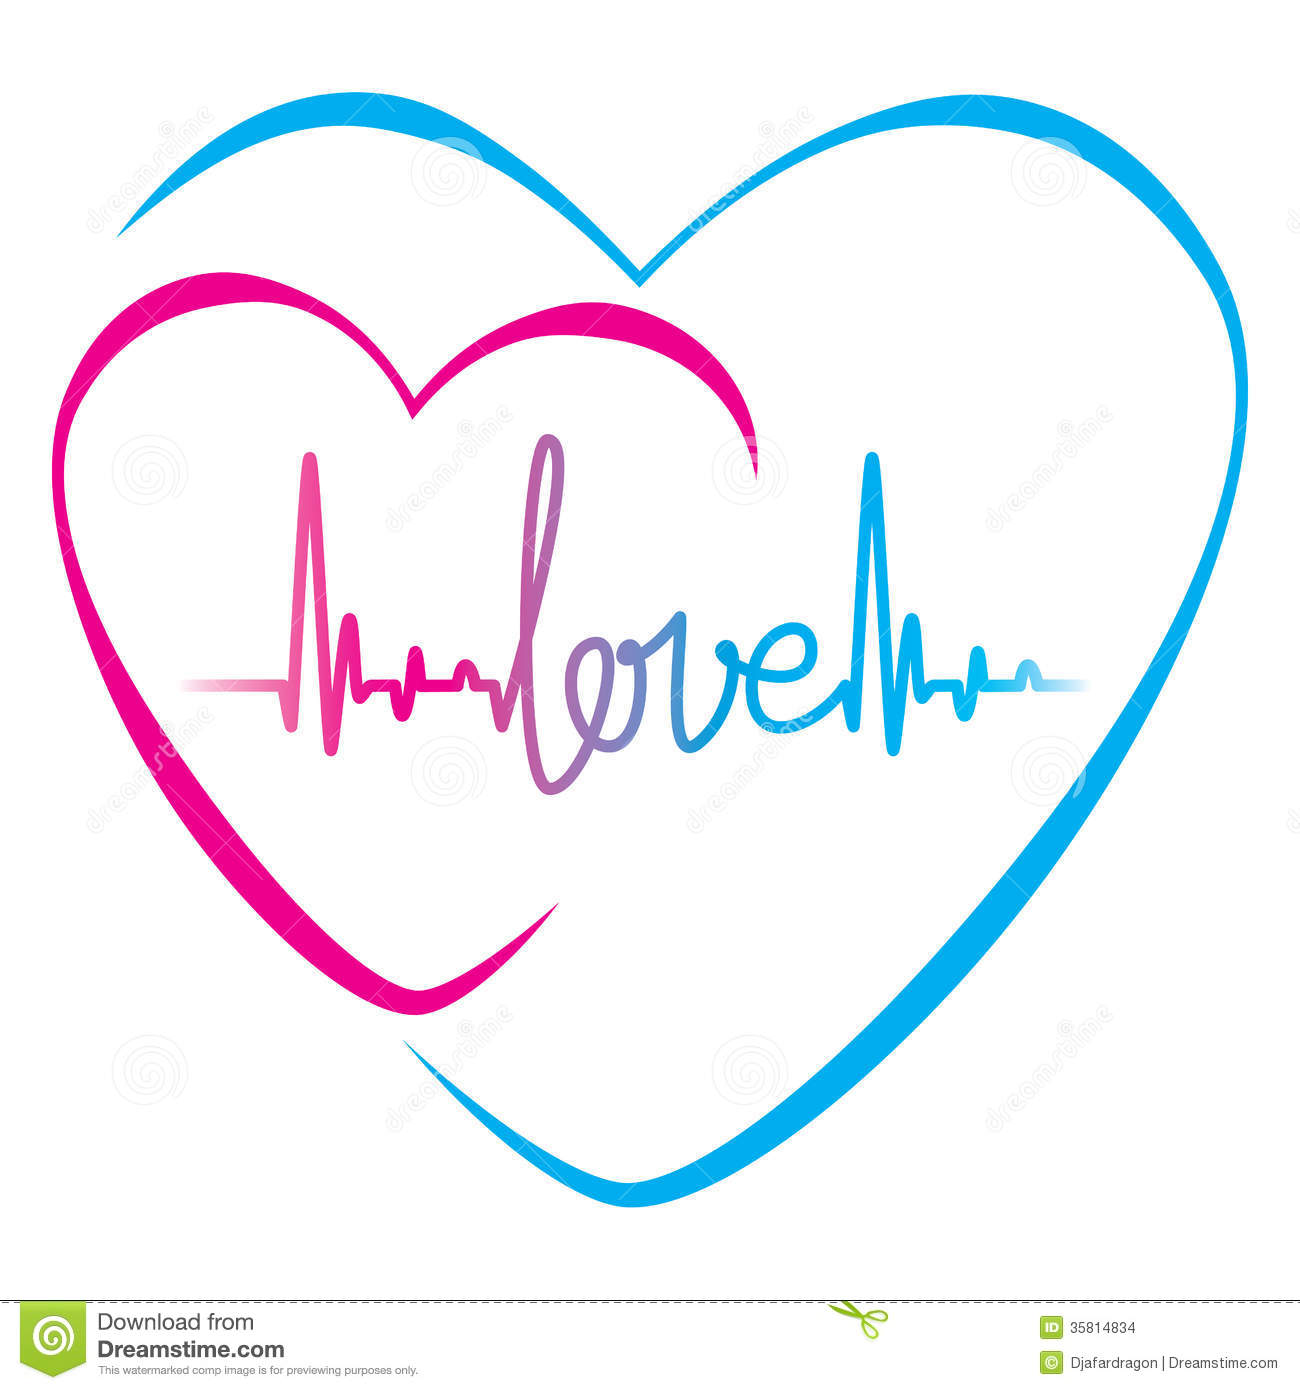 Heartbeat Love Text And Heart Symbol Stock Images - Image ...